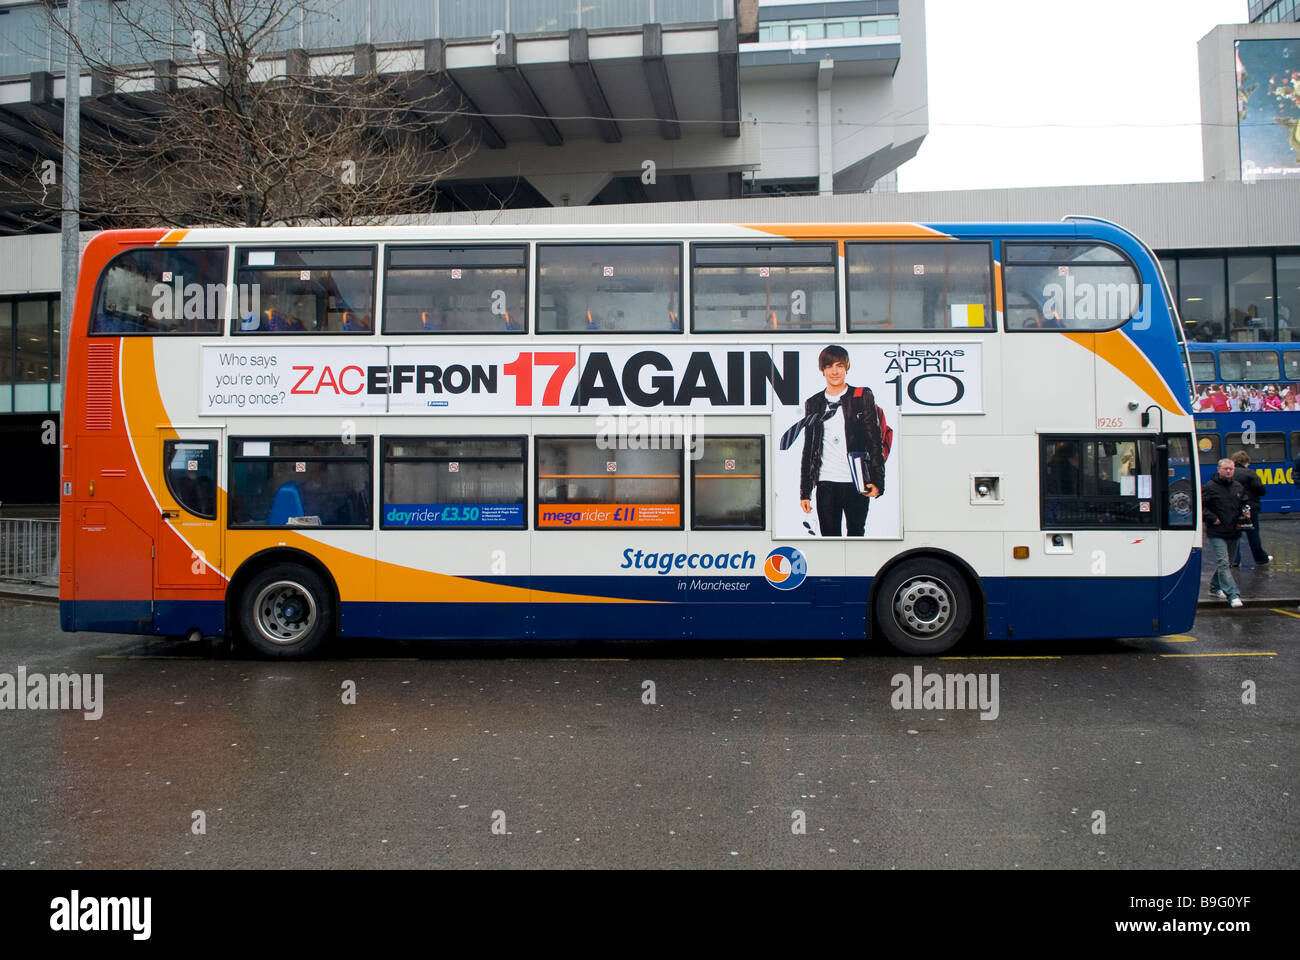 Stagecoach bus in Piccadilly Gardens Manchester city centre UK - Stock Image